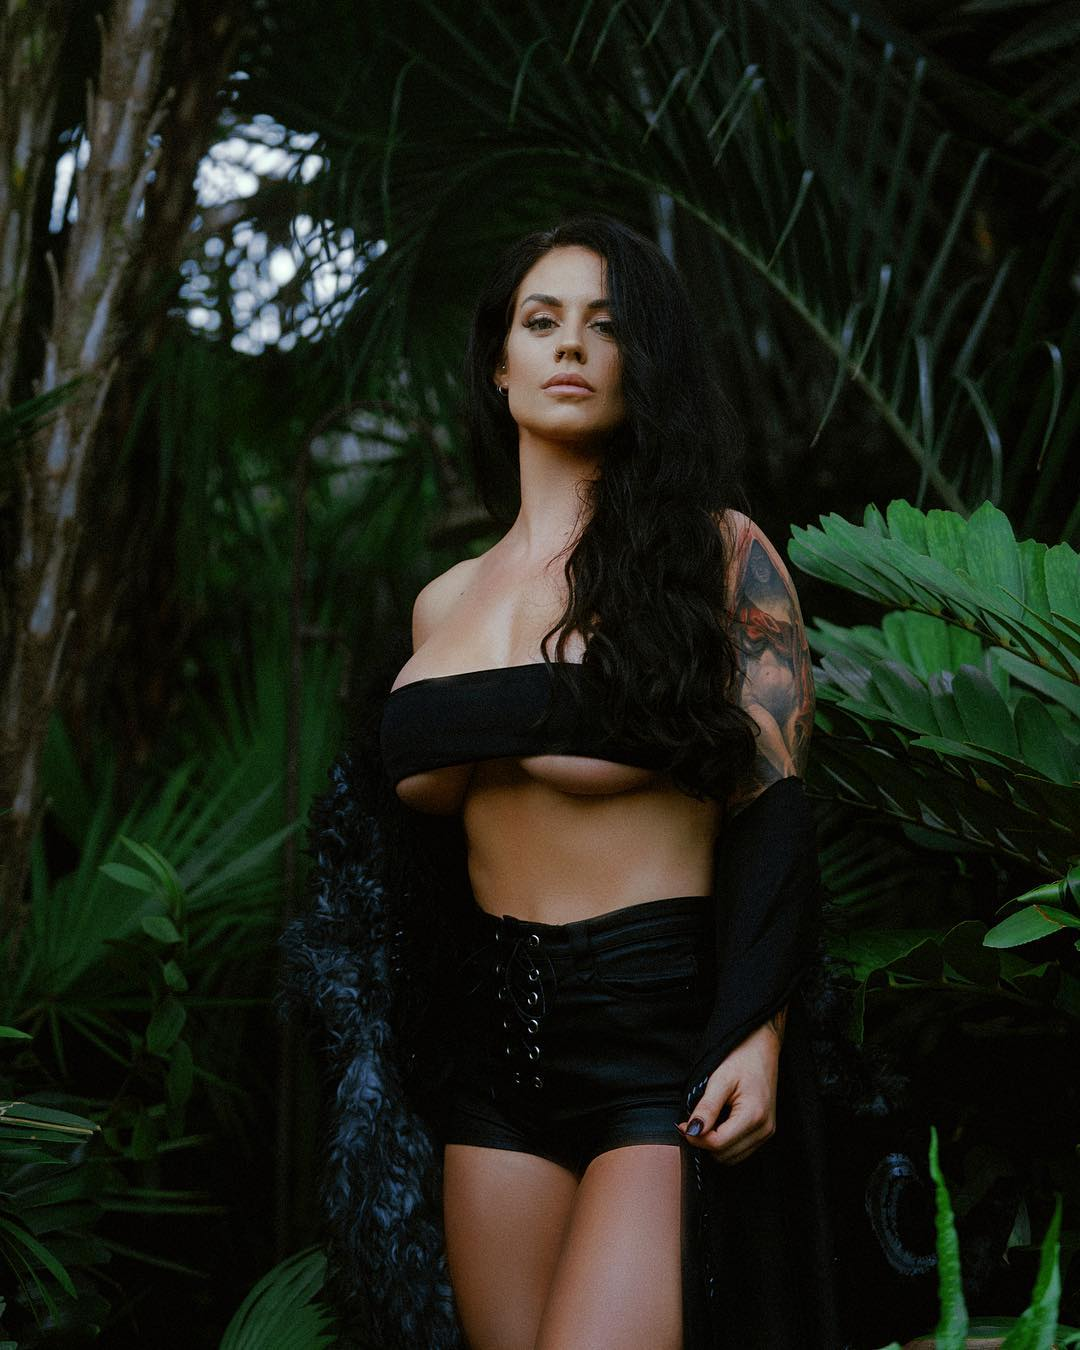 Kaitlyn sexy pic